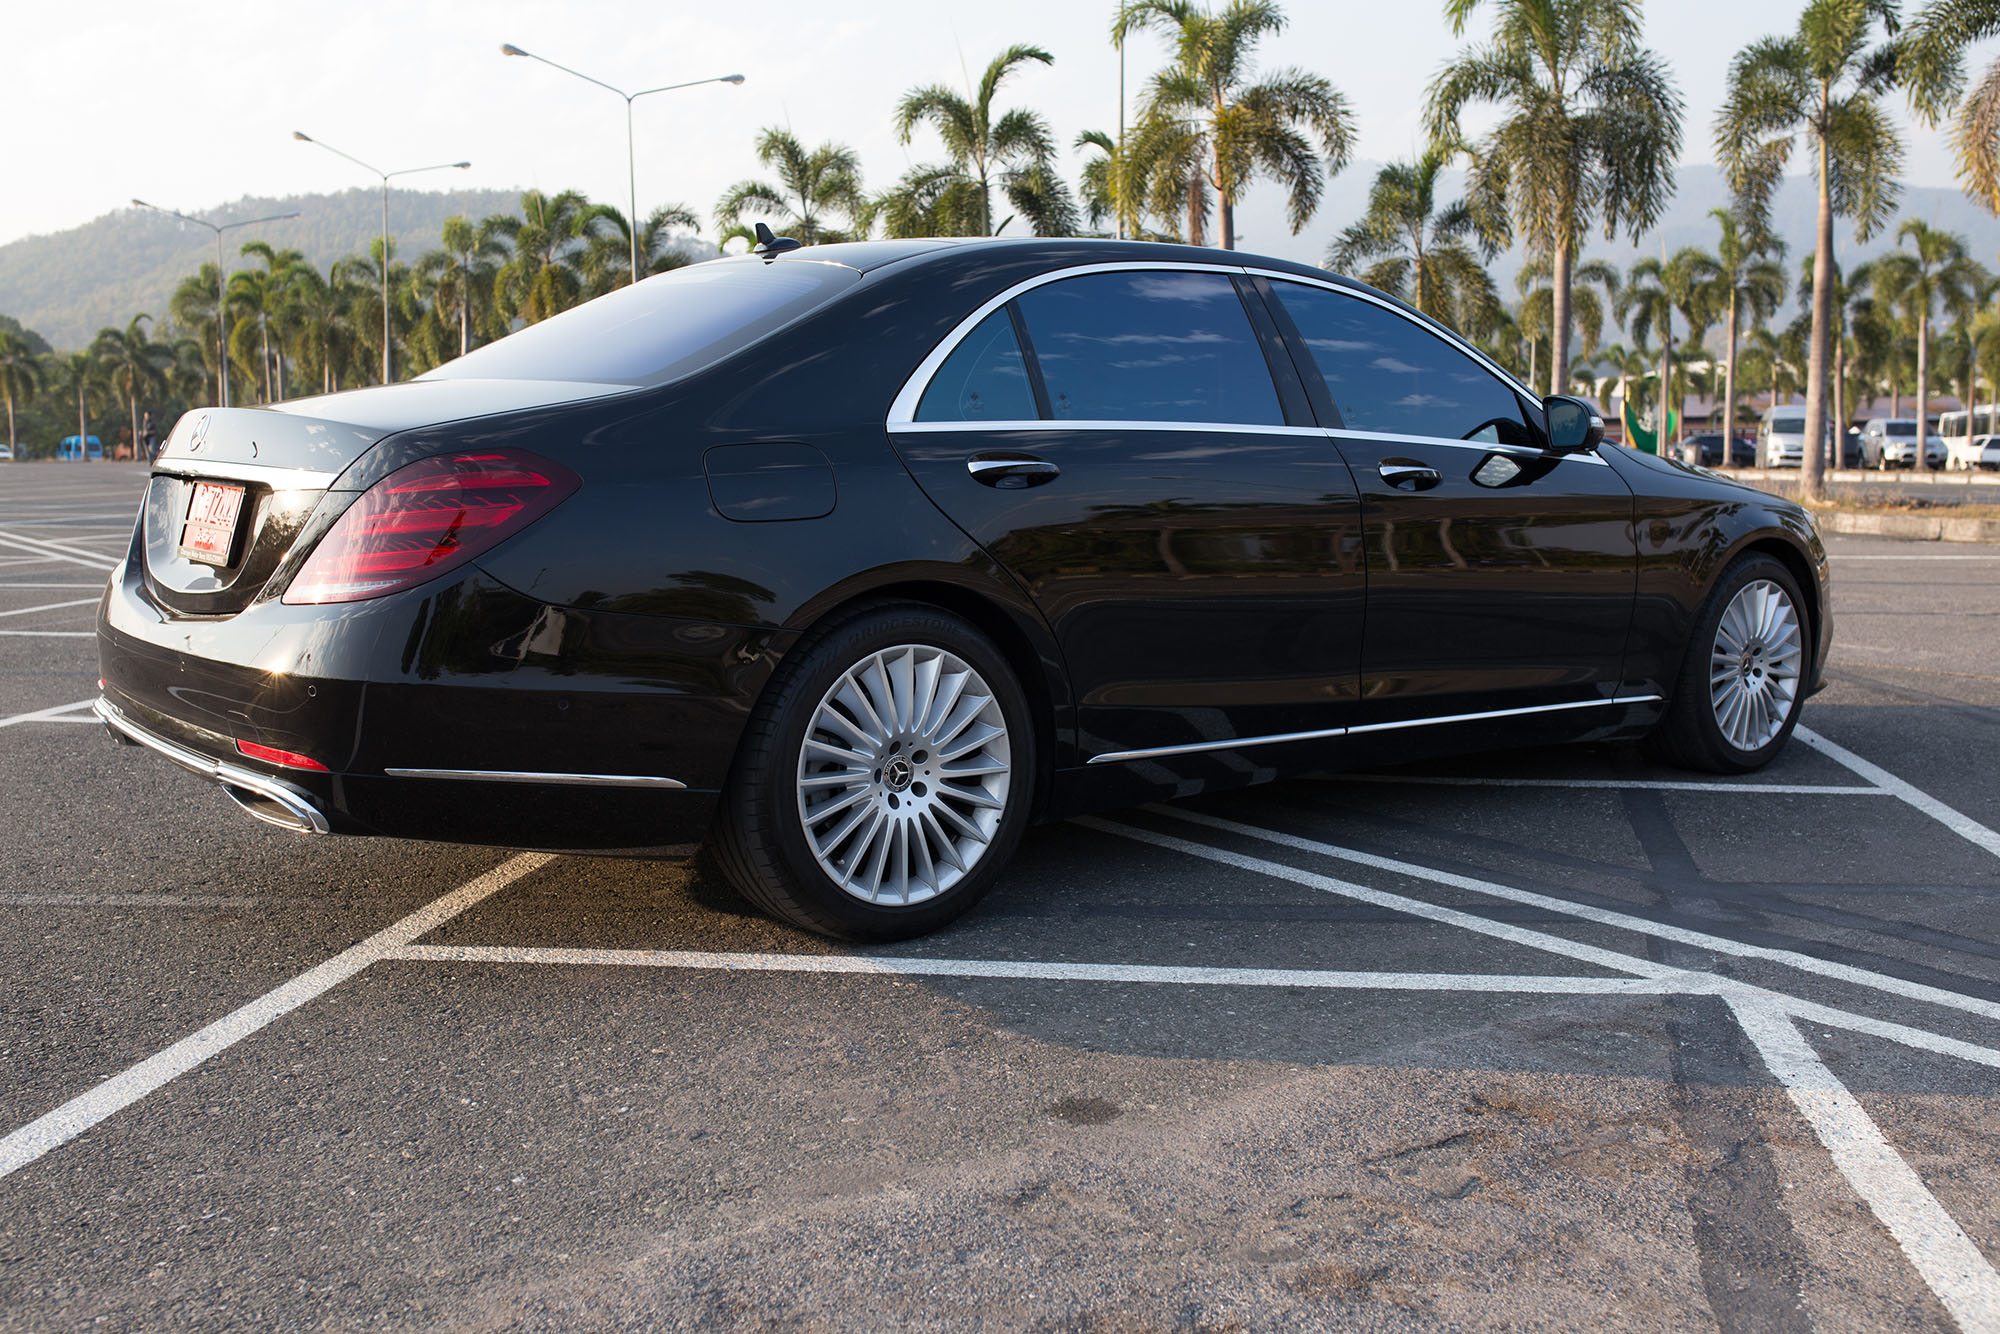 benz s class luxurious car for rental in chiangmai lamphun